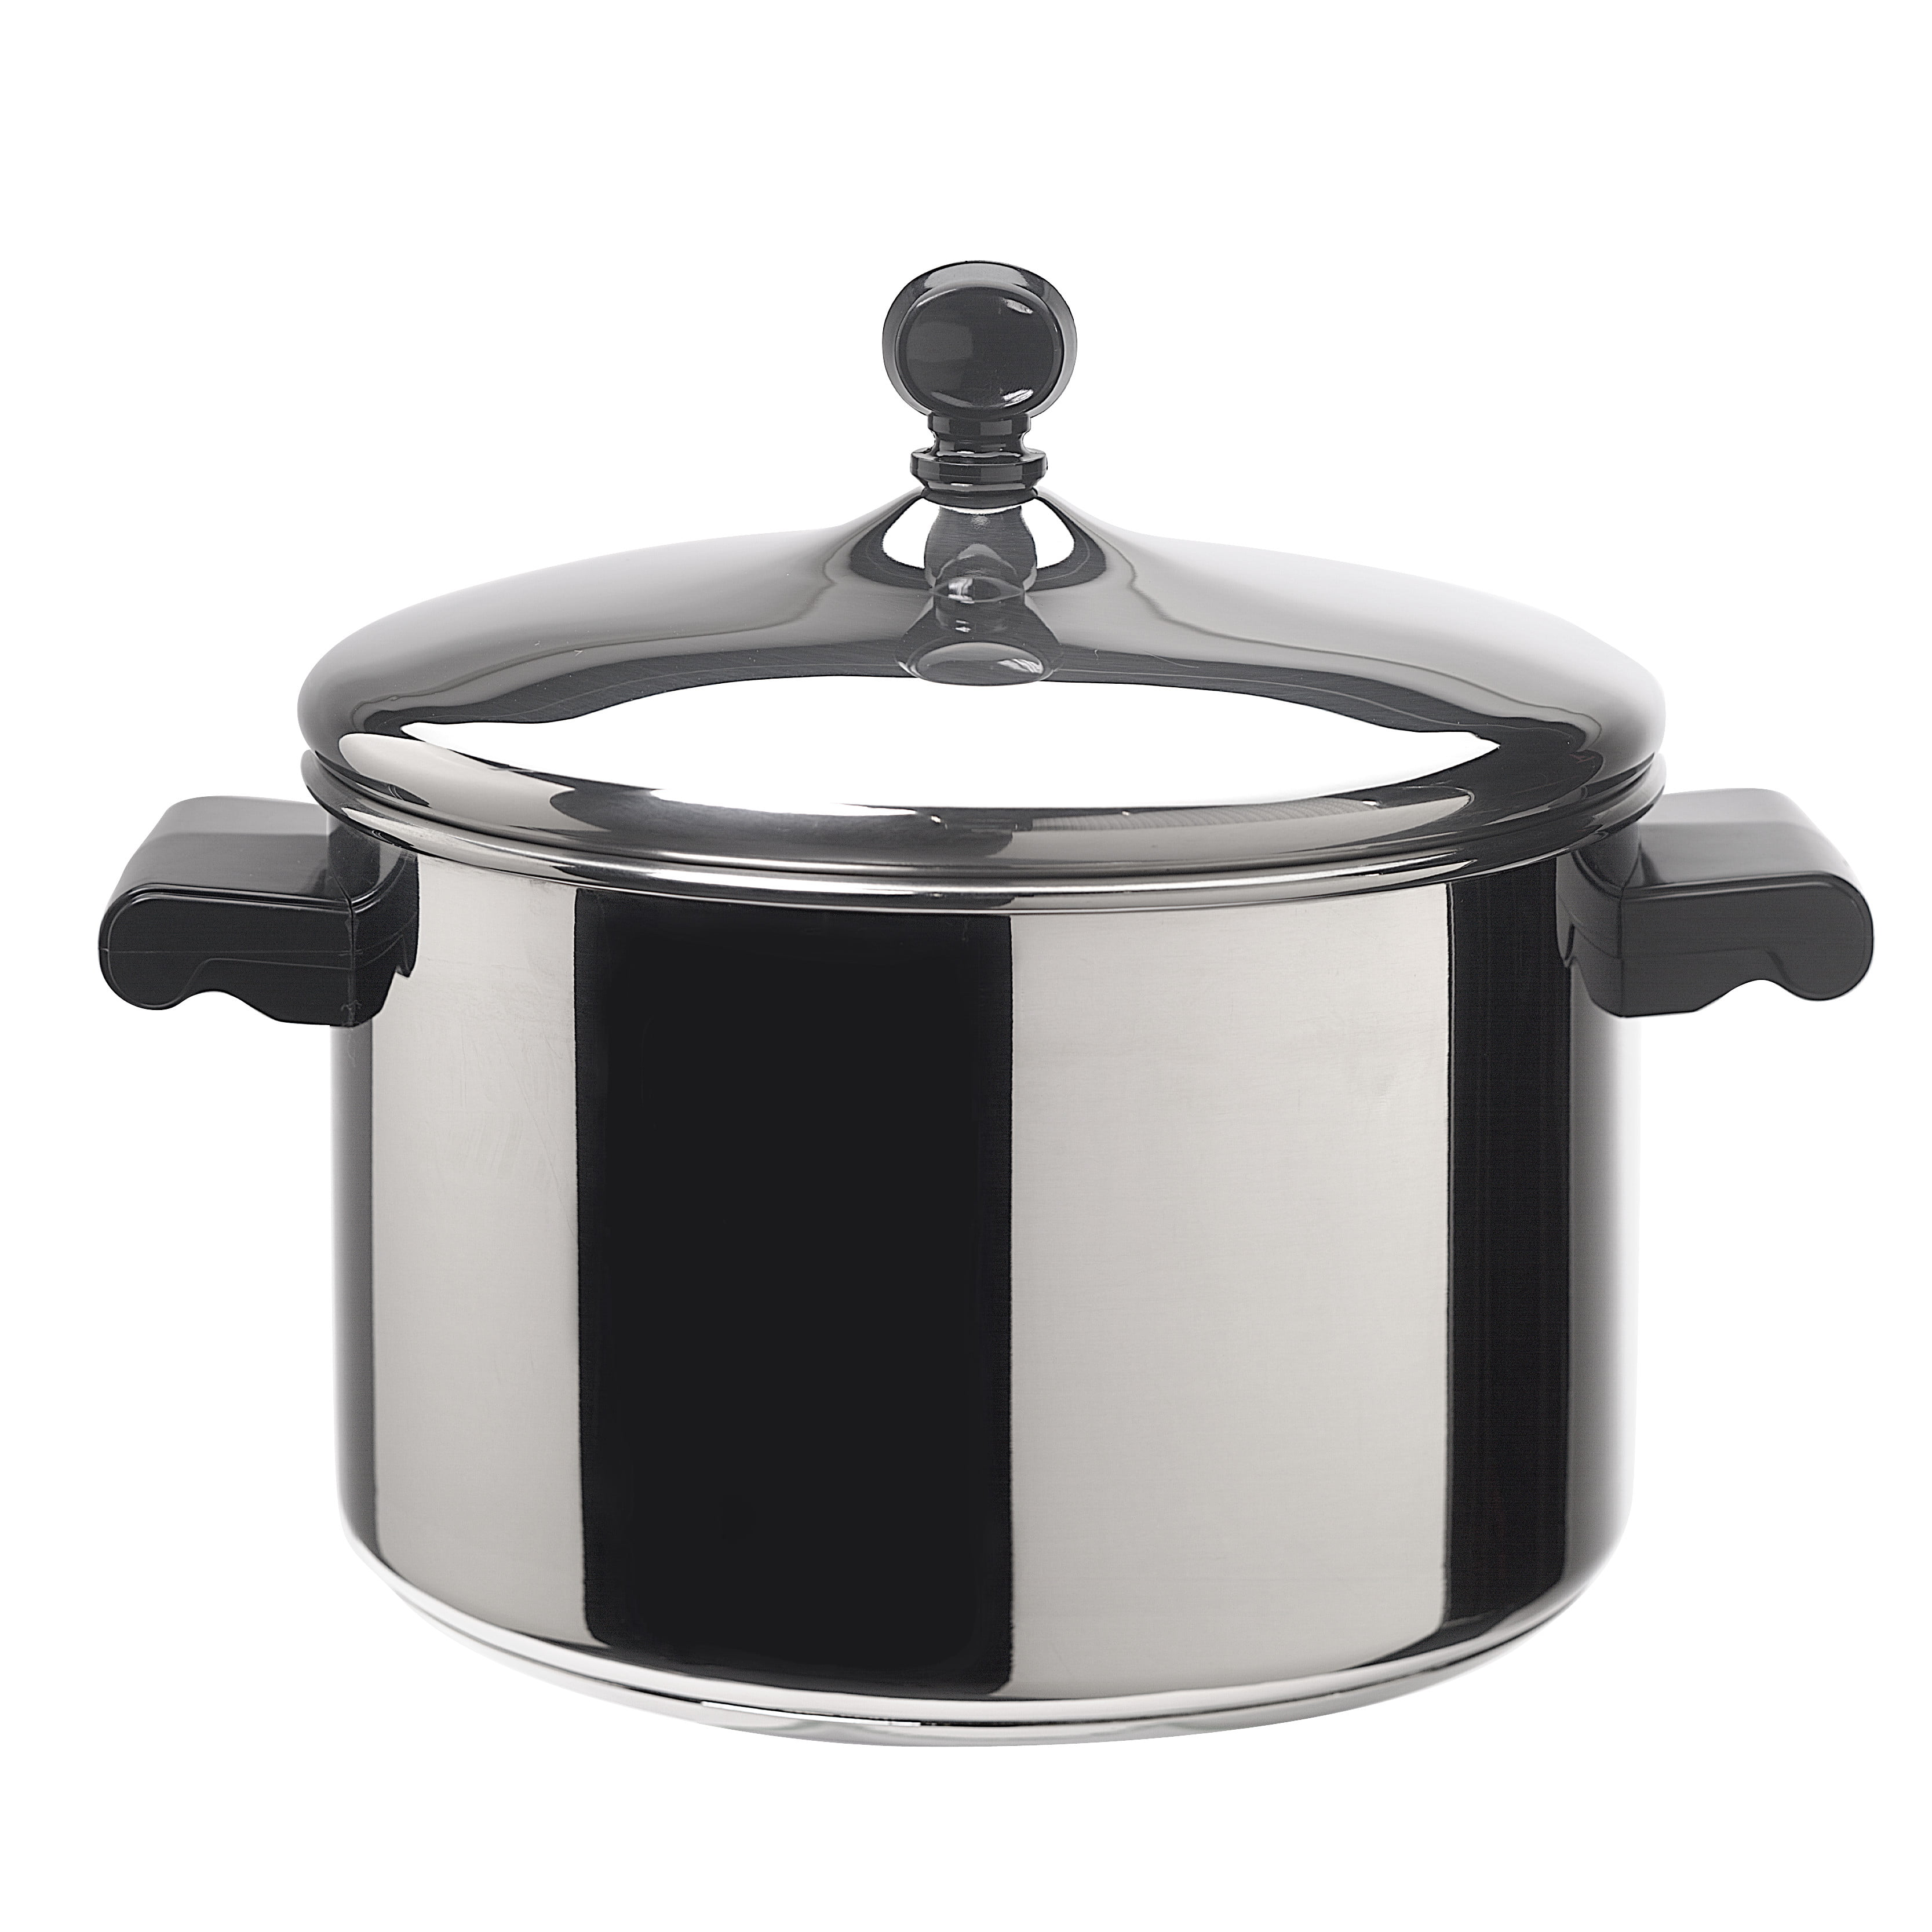 Farberware 1810 Stainless Steel 4 Quart Stock Pot Classic Stainless